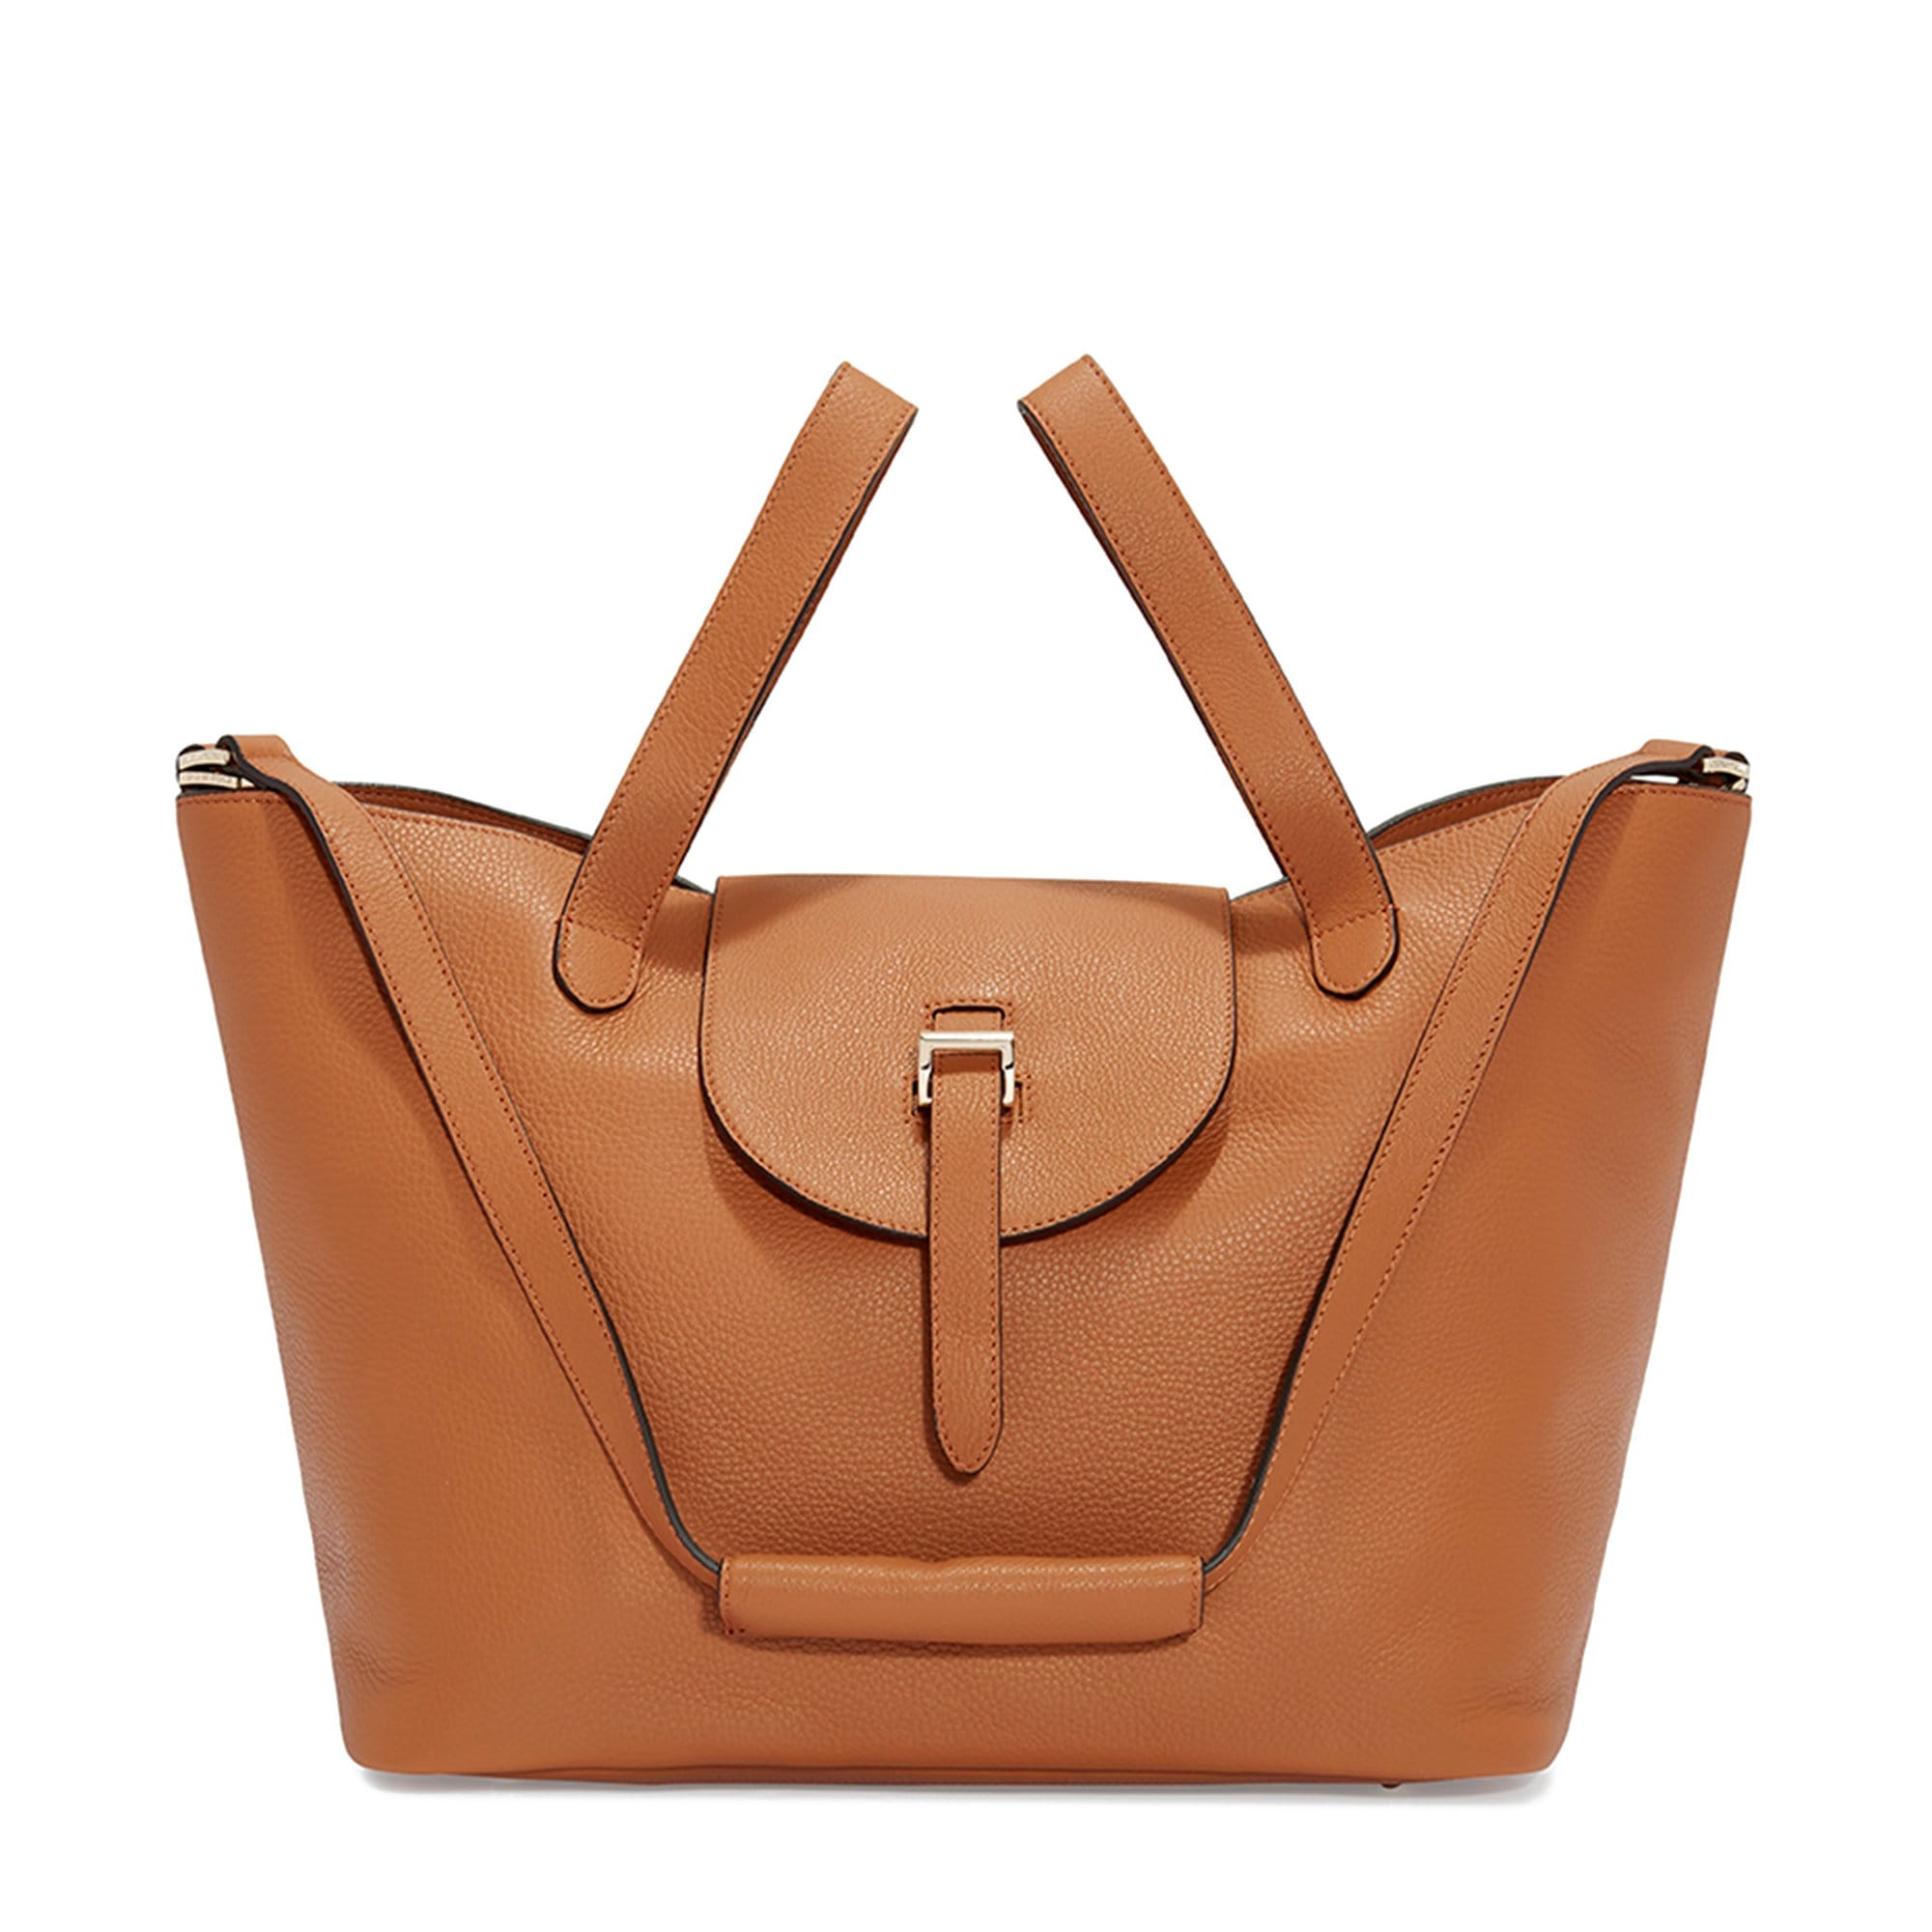 f000860ff56e Thela Tan Tote Bag - Italian Luxury Handbag – meli melo Official